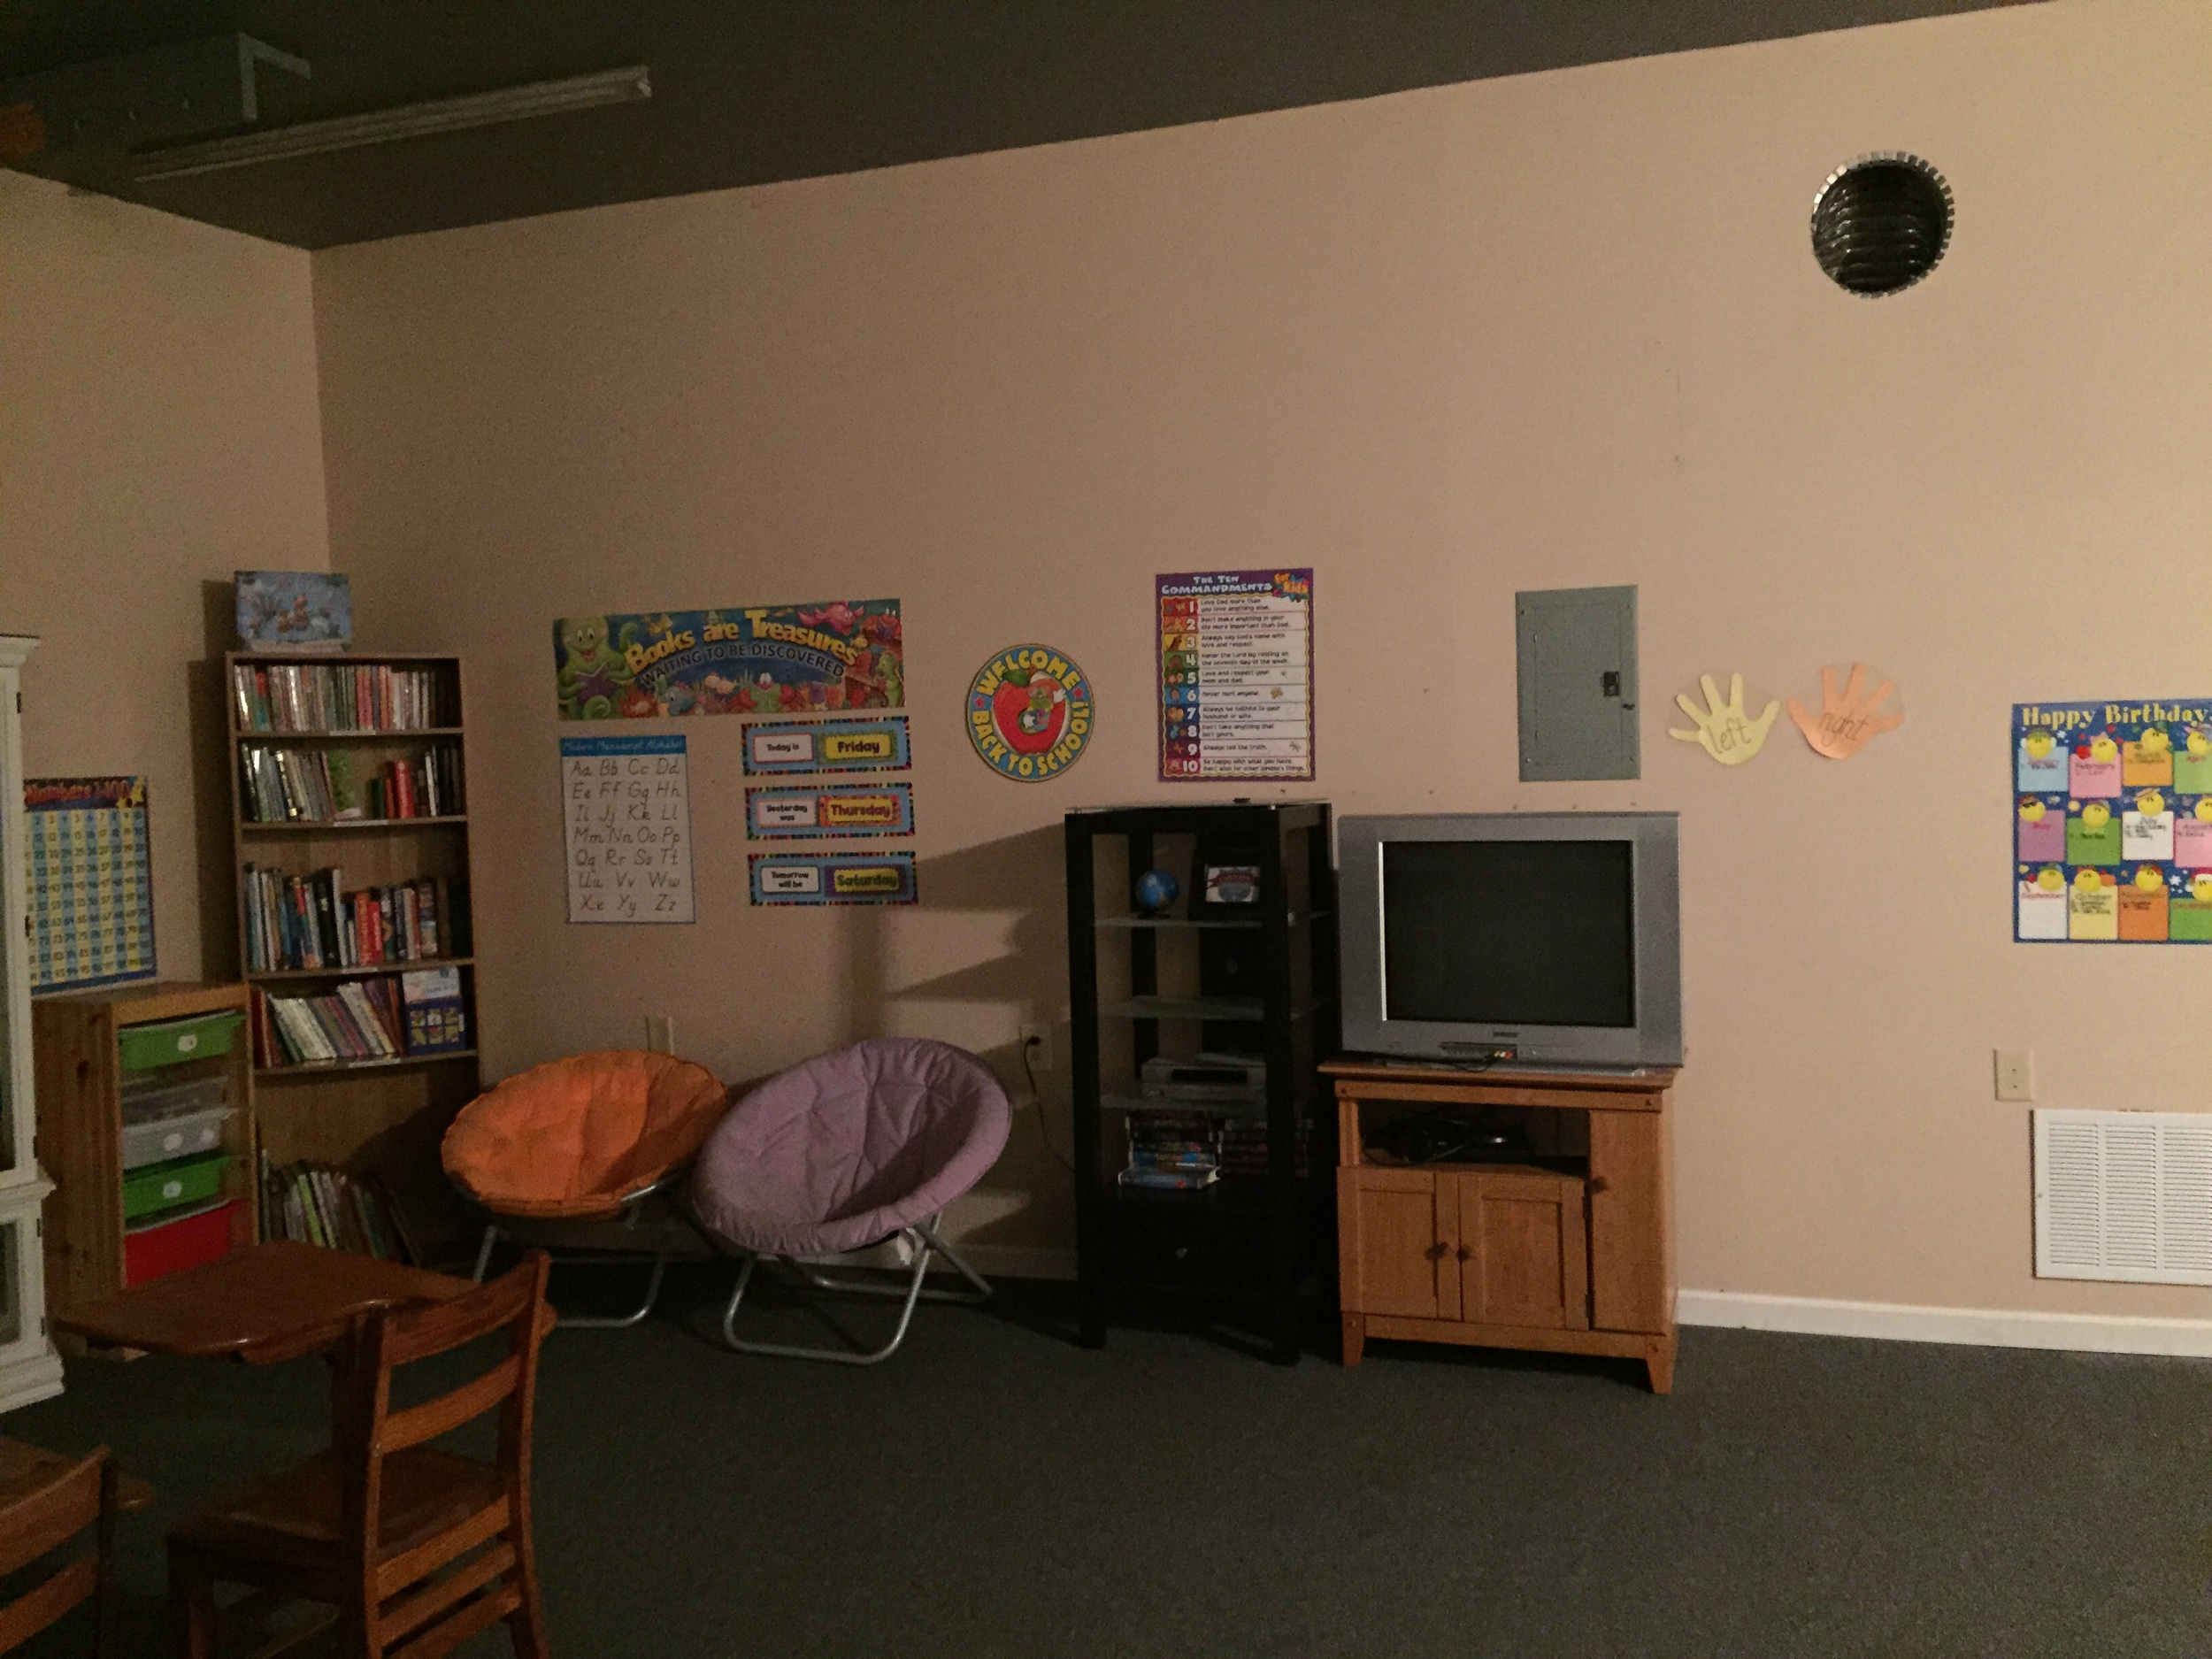 Media area and Library/Reading area. Not fully complete, but functional!